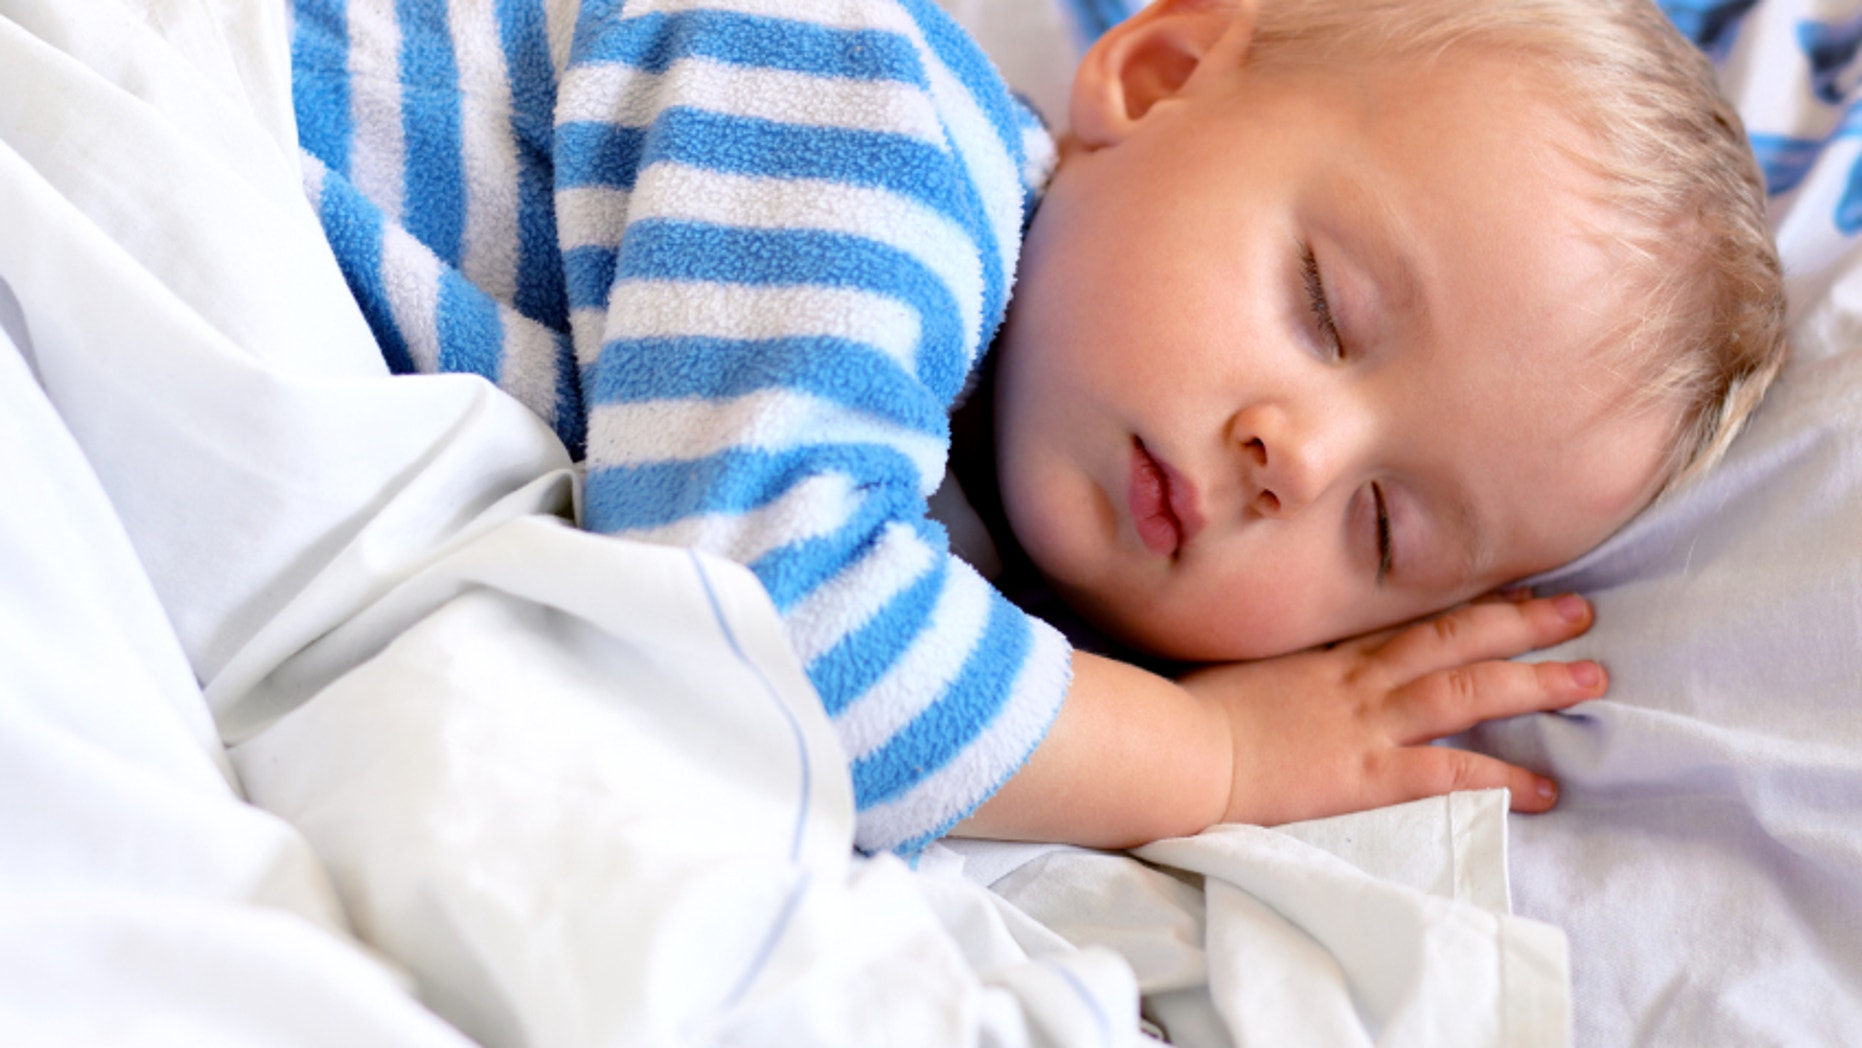 Childrens Sleep Problems Linked To >> Toddlers Sleep Problems Tied To Behavior Issues Later Fox News